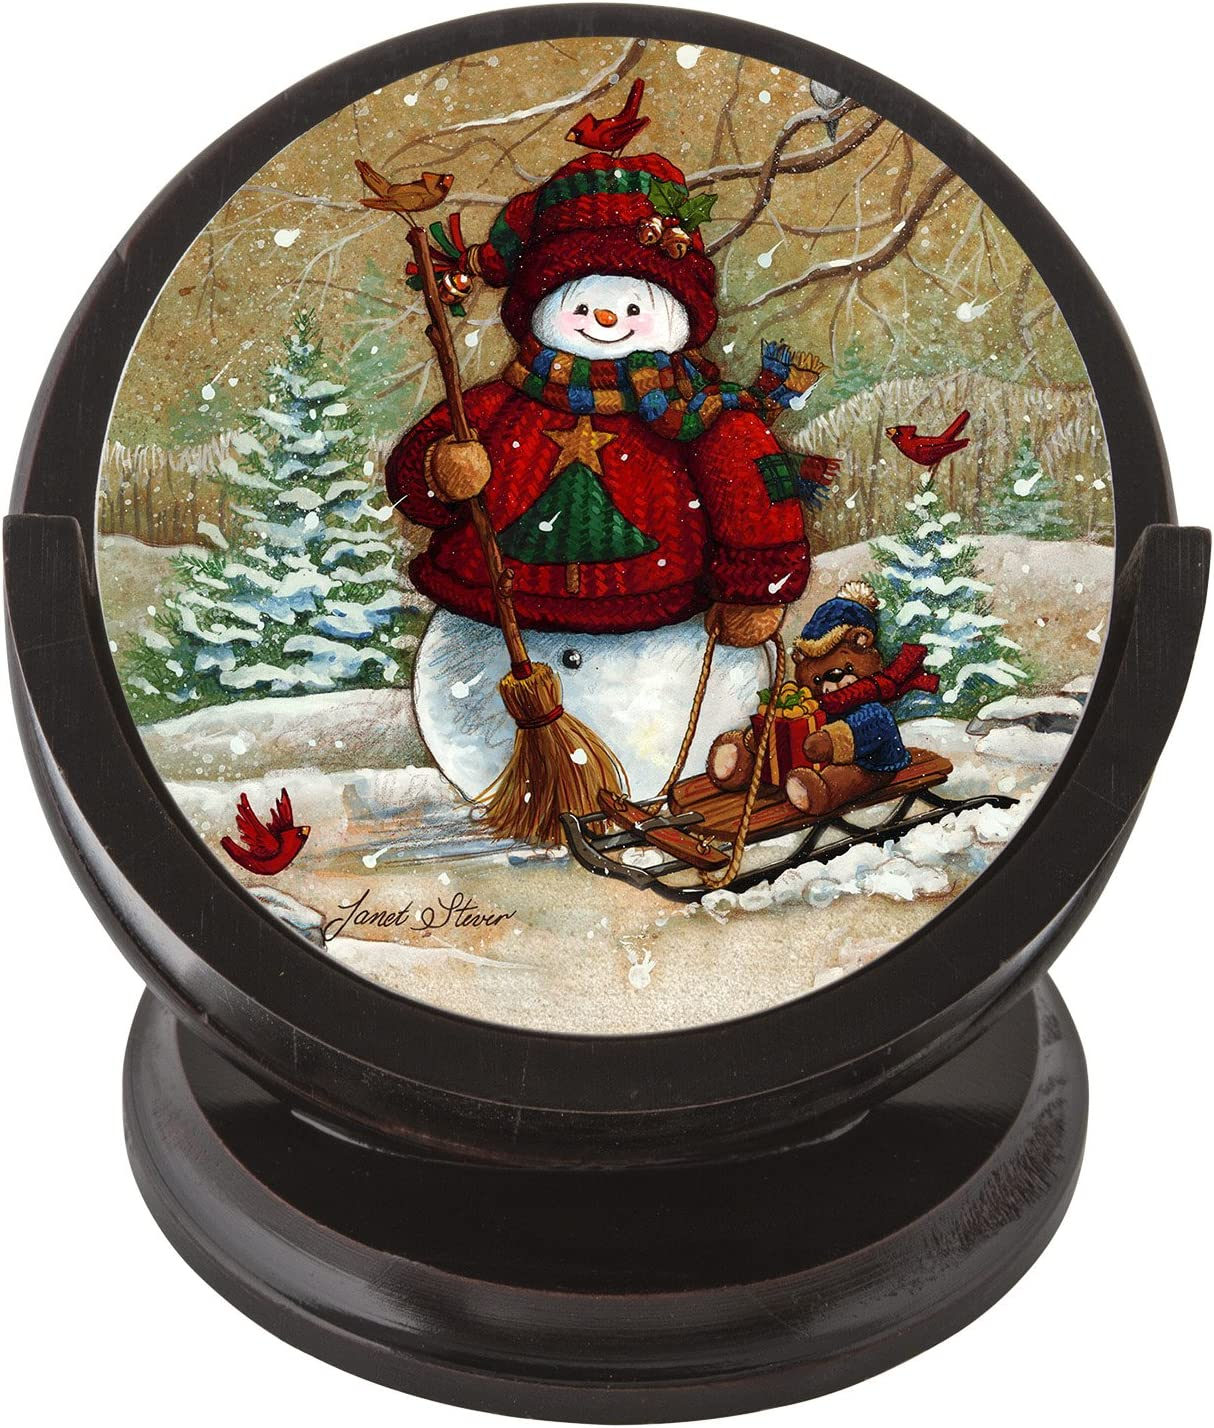 Thirstystone Snowman Sandstone Coaster Set with Wood Holder Included, Multicolor